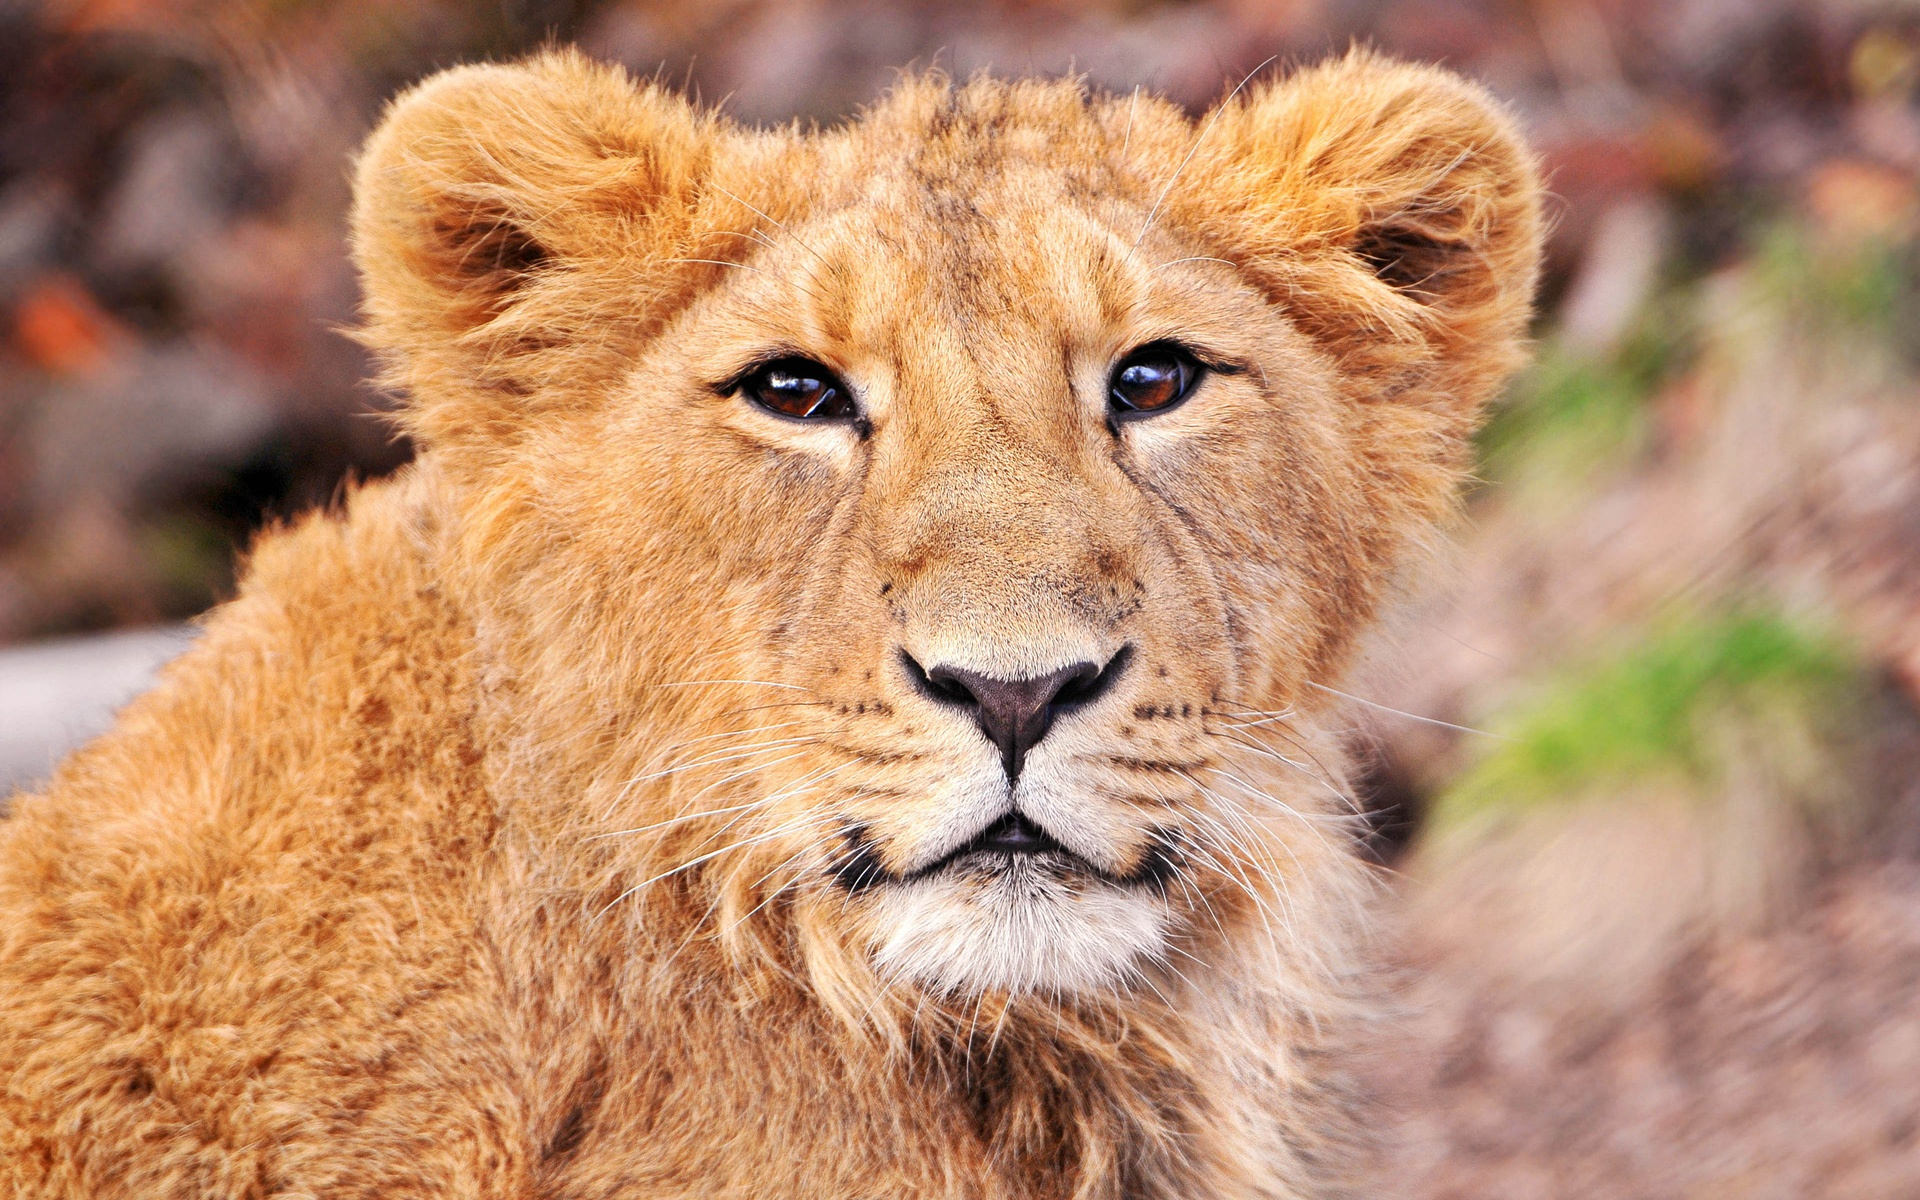 of this cute lion cub 1920x1200 wallpaper download page 990358 1920x1200